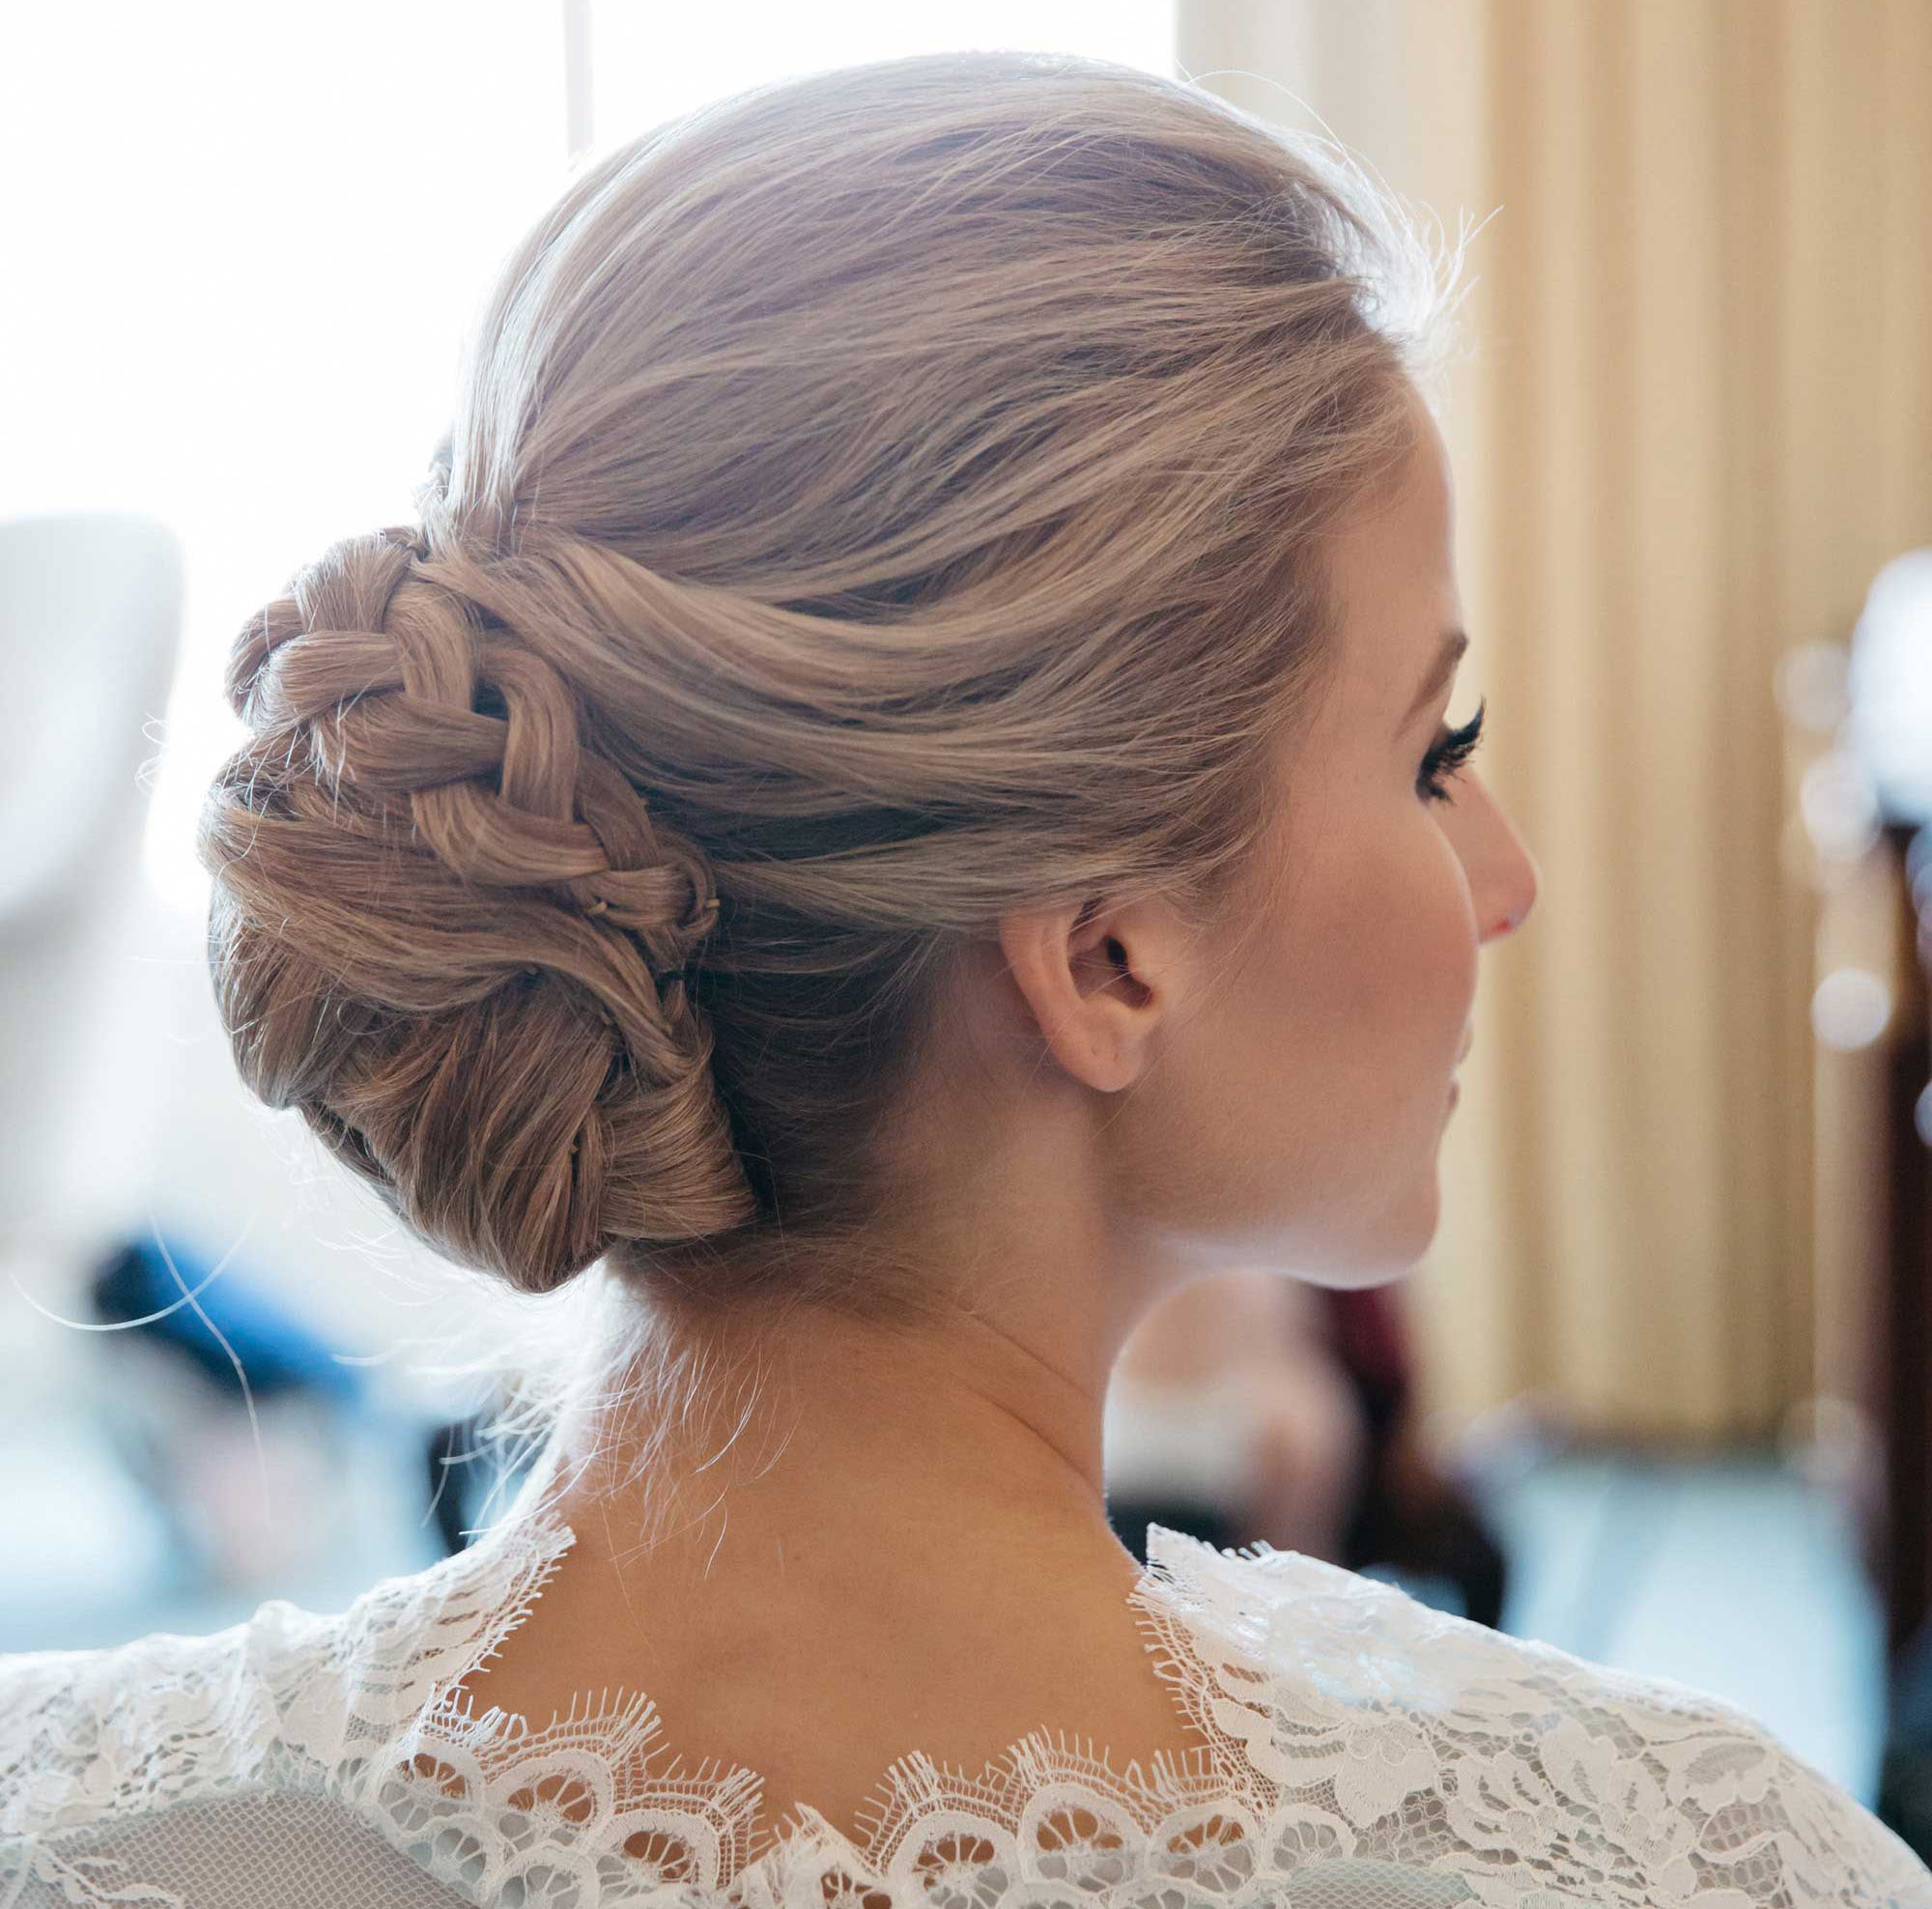 Wedding Hairstyles: Braided Hairstyles: 5 Ideas For Your Wedding Look